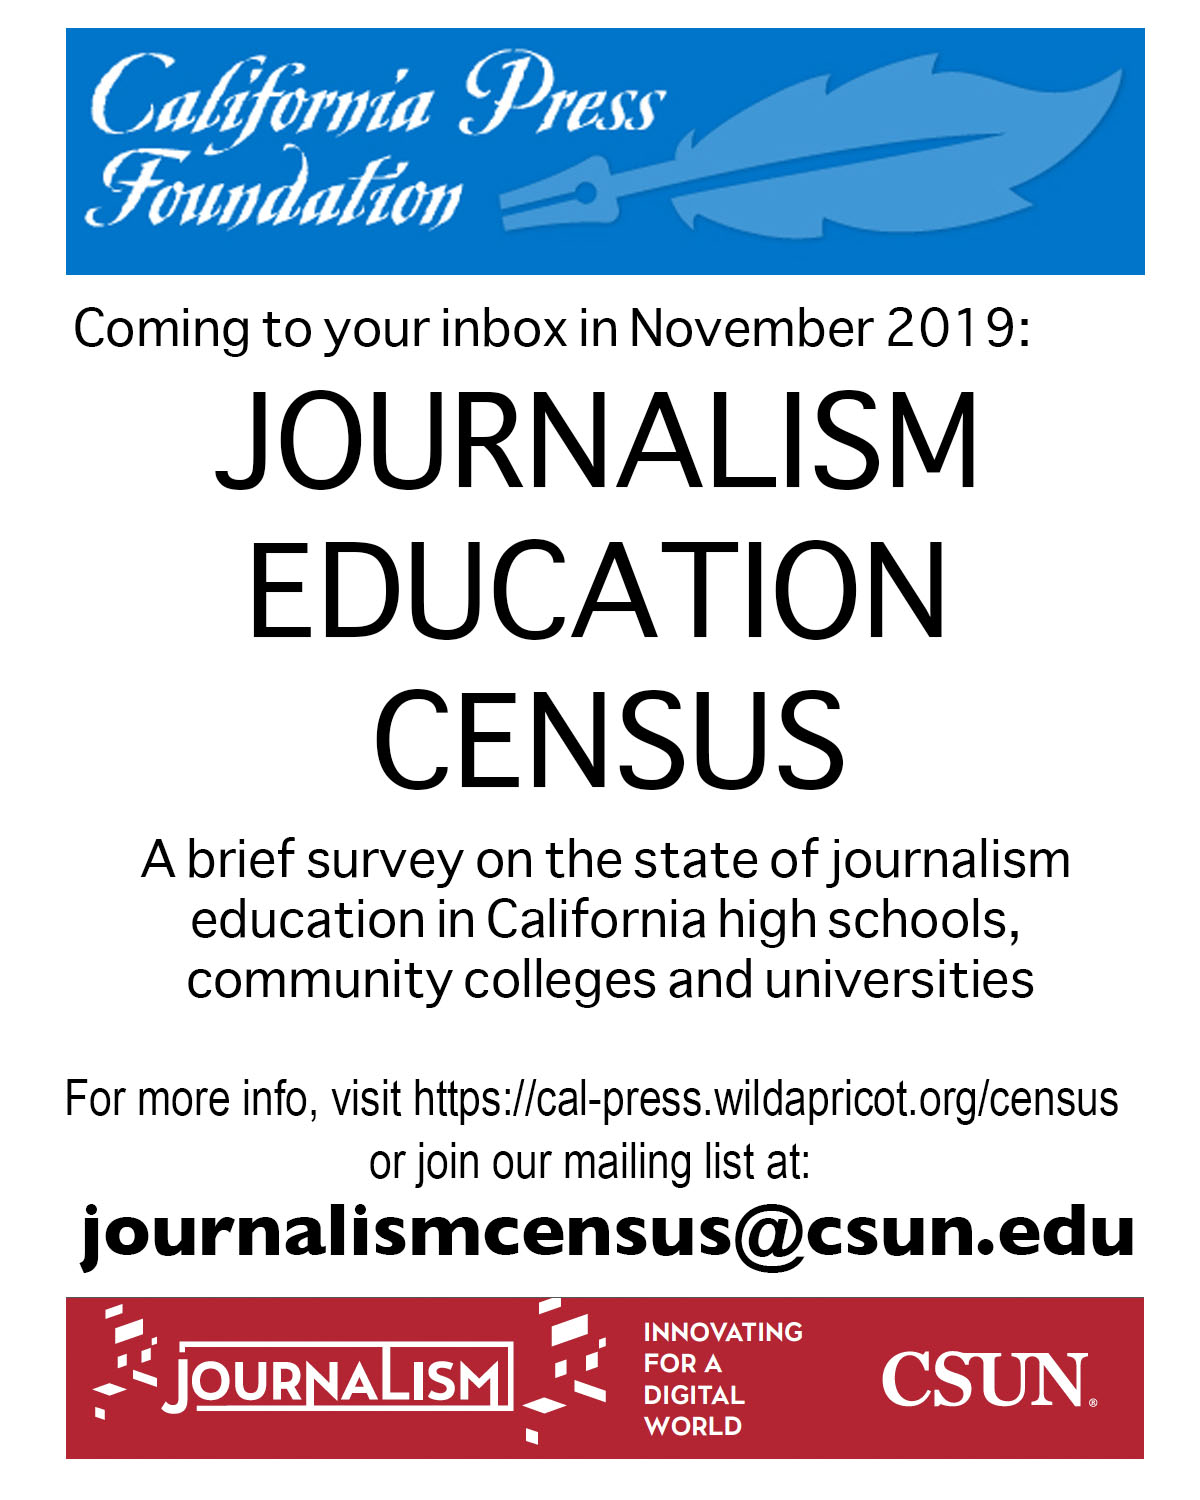 Journalism Education Census flyer